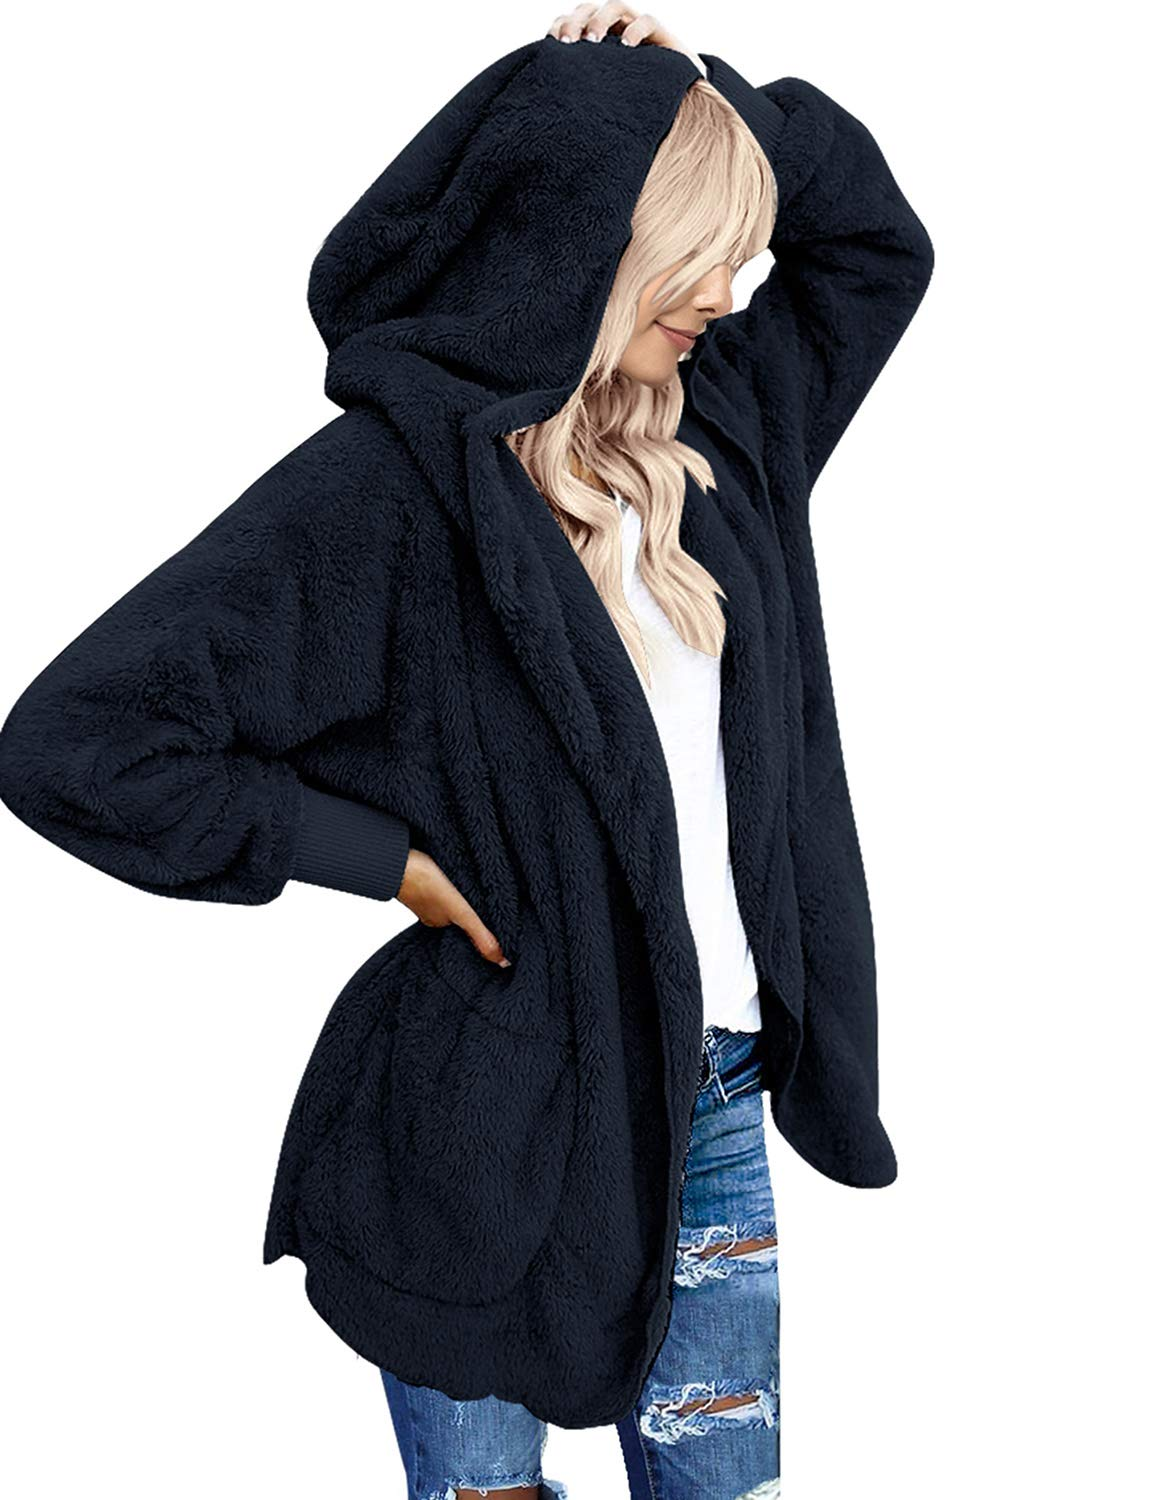 Women/'s Oversized Open Front Hooded Draped Pockets Cardigan Casual Coat US